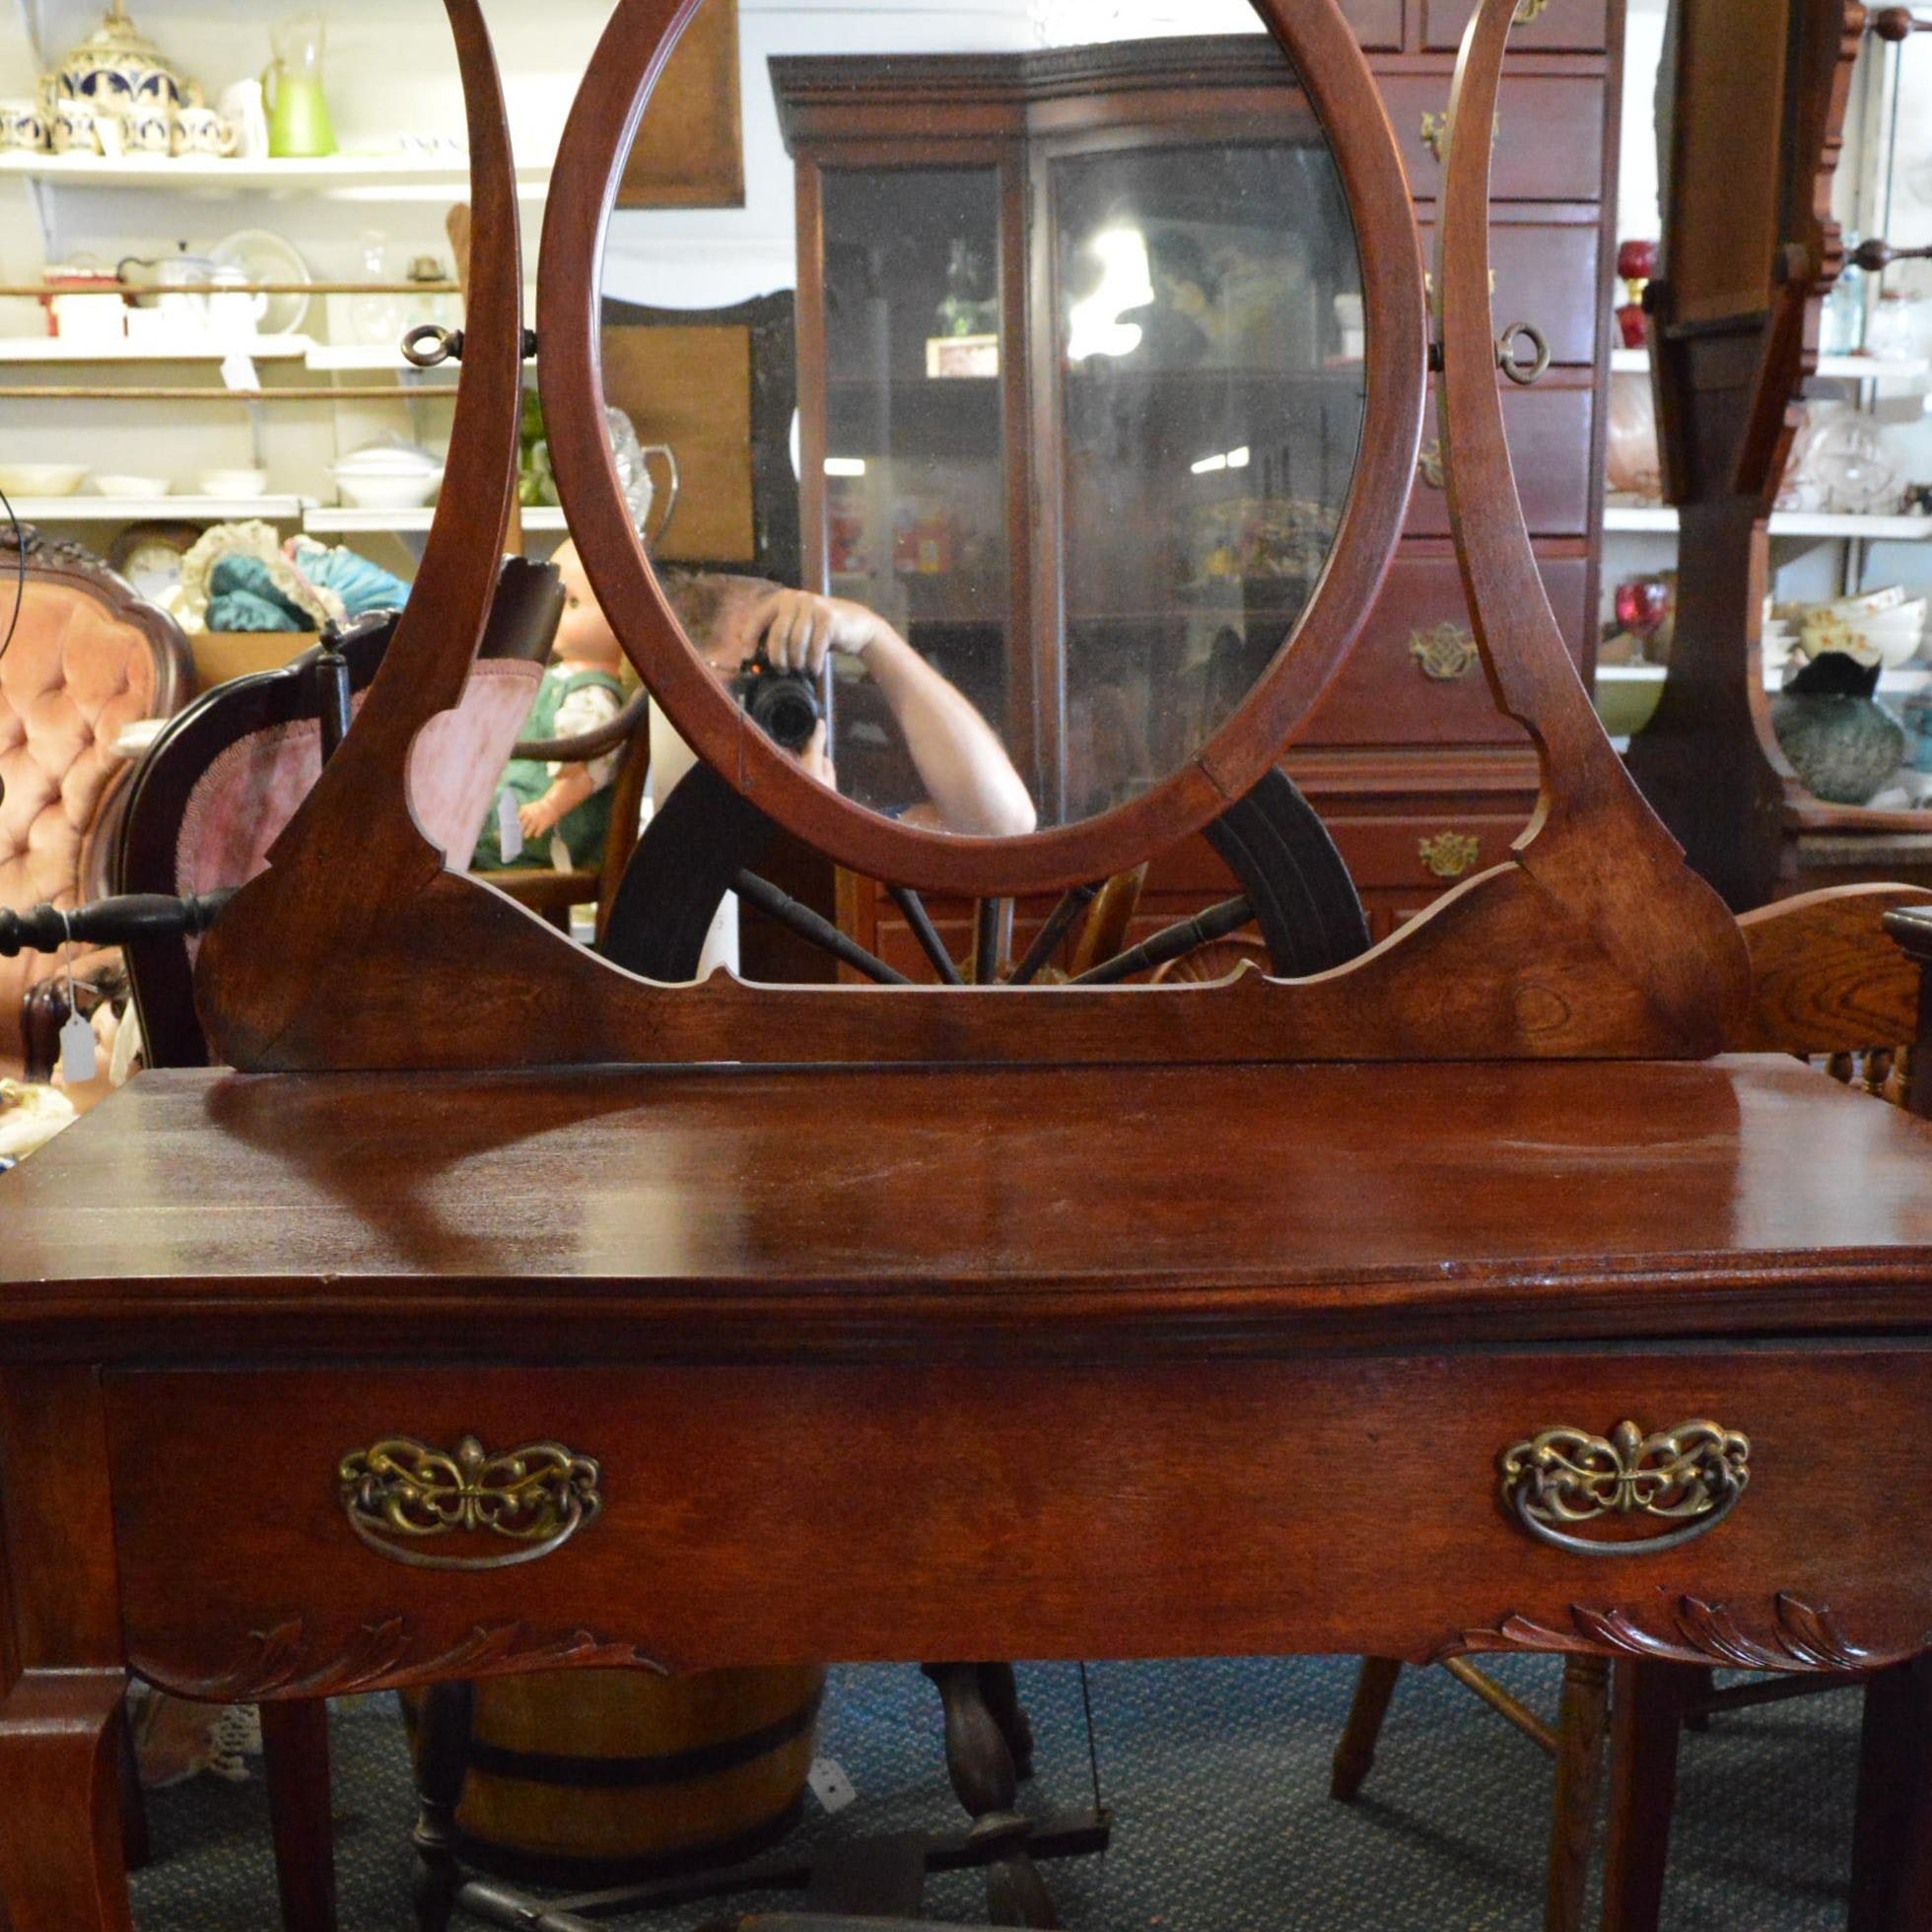 Louis XV Style Writing Desk With Empire Style Mirror and Vanity Bench